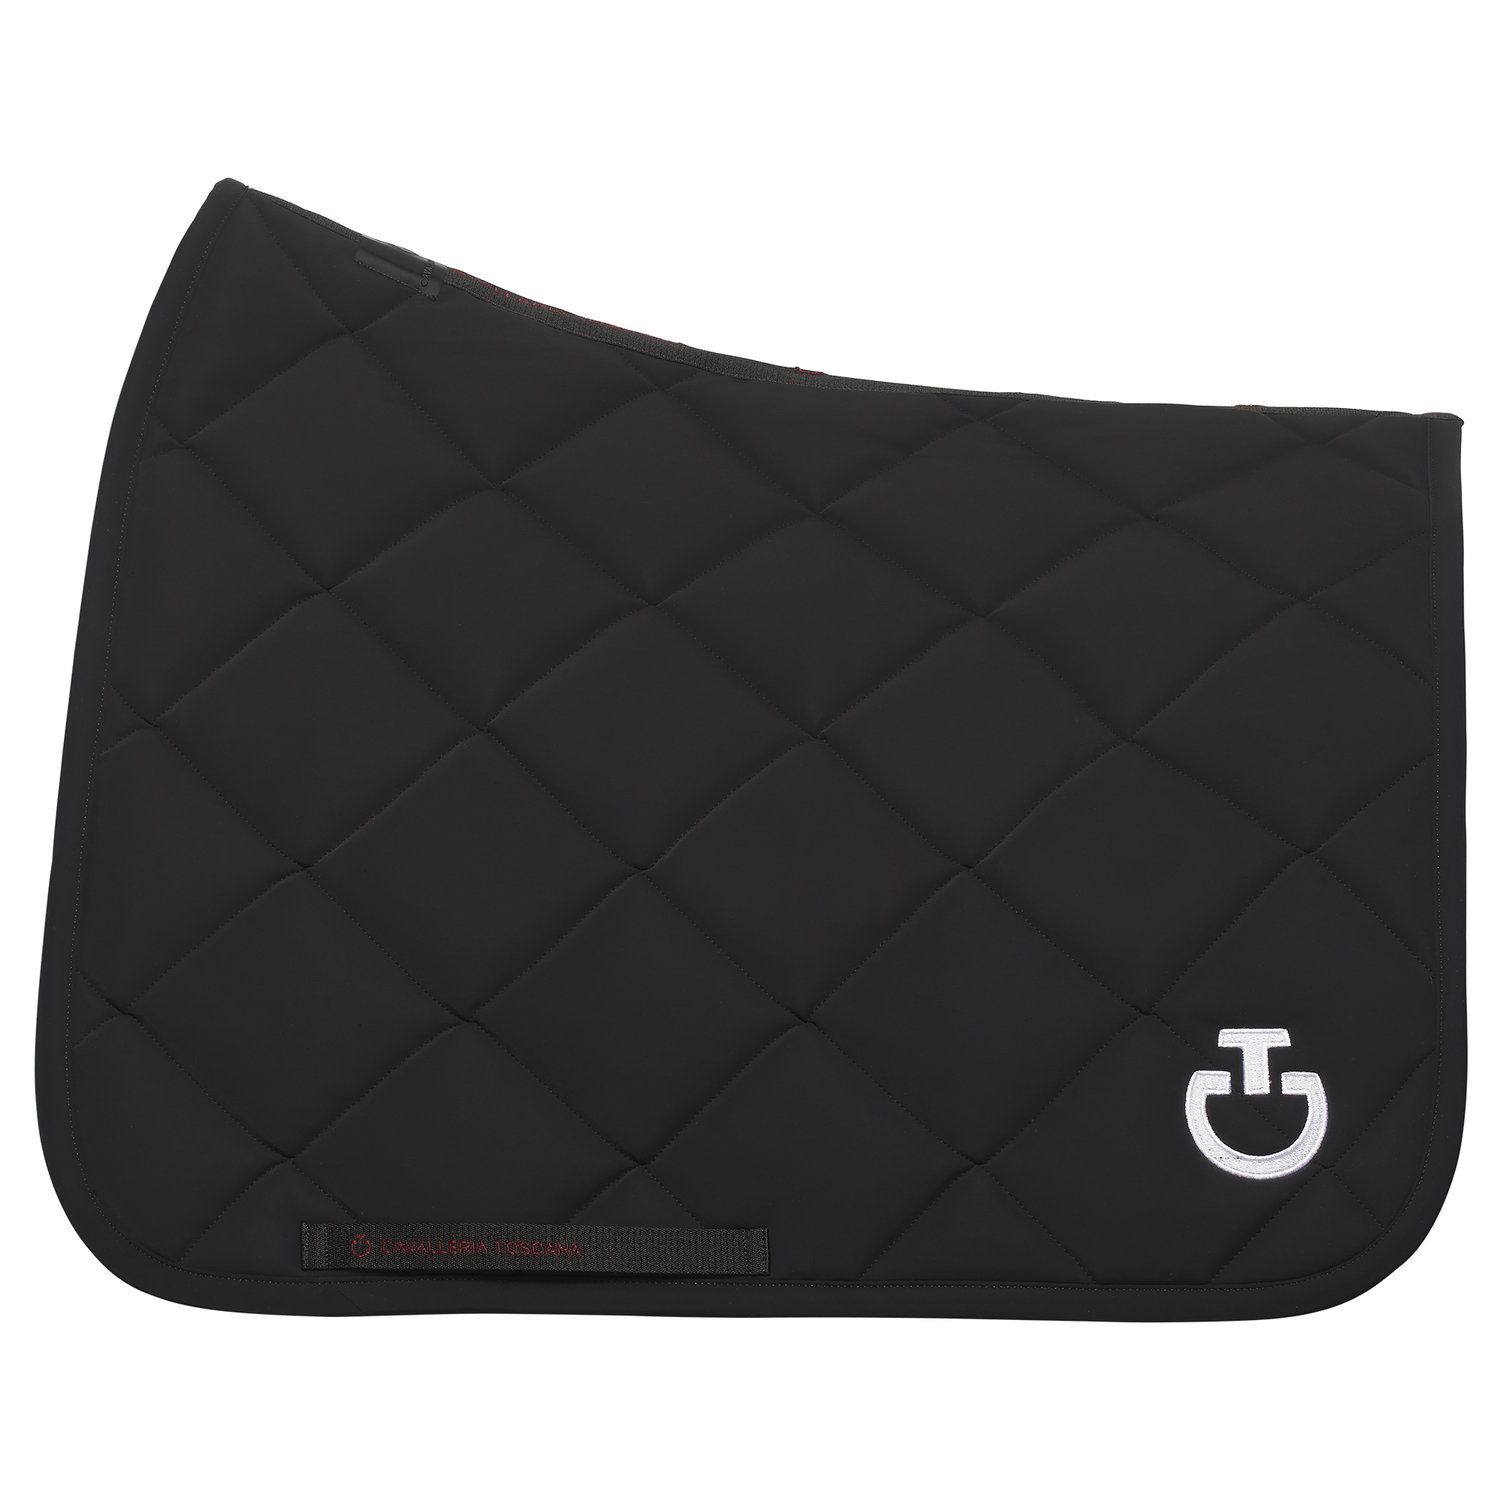 Rhombi-quilted dressage saddle pad